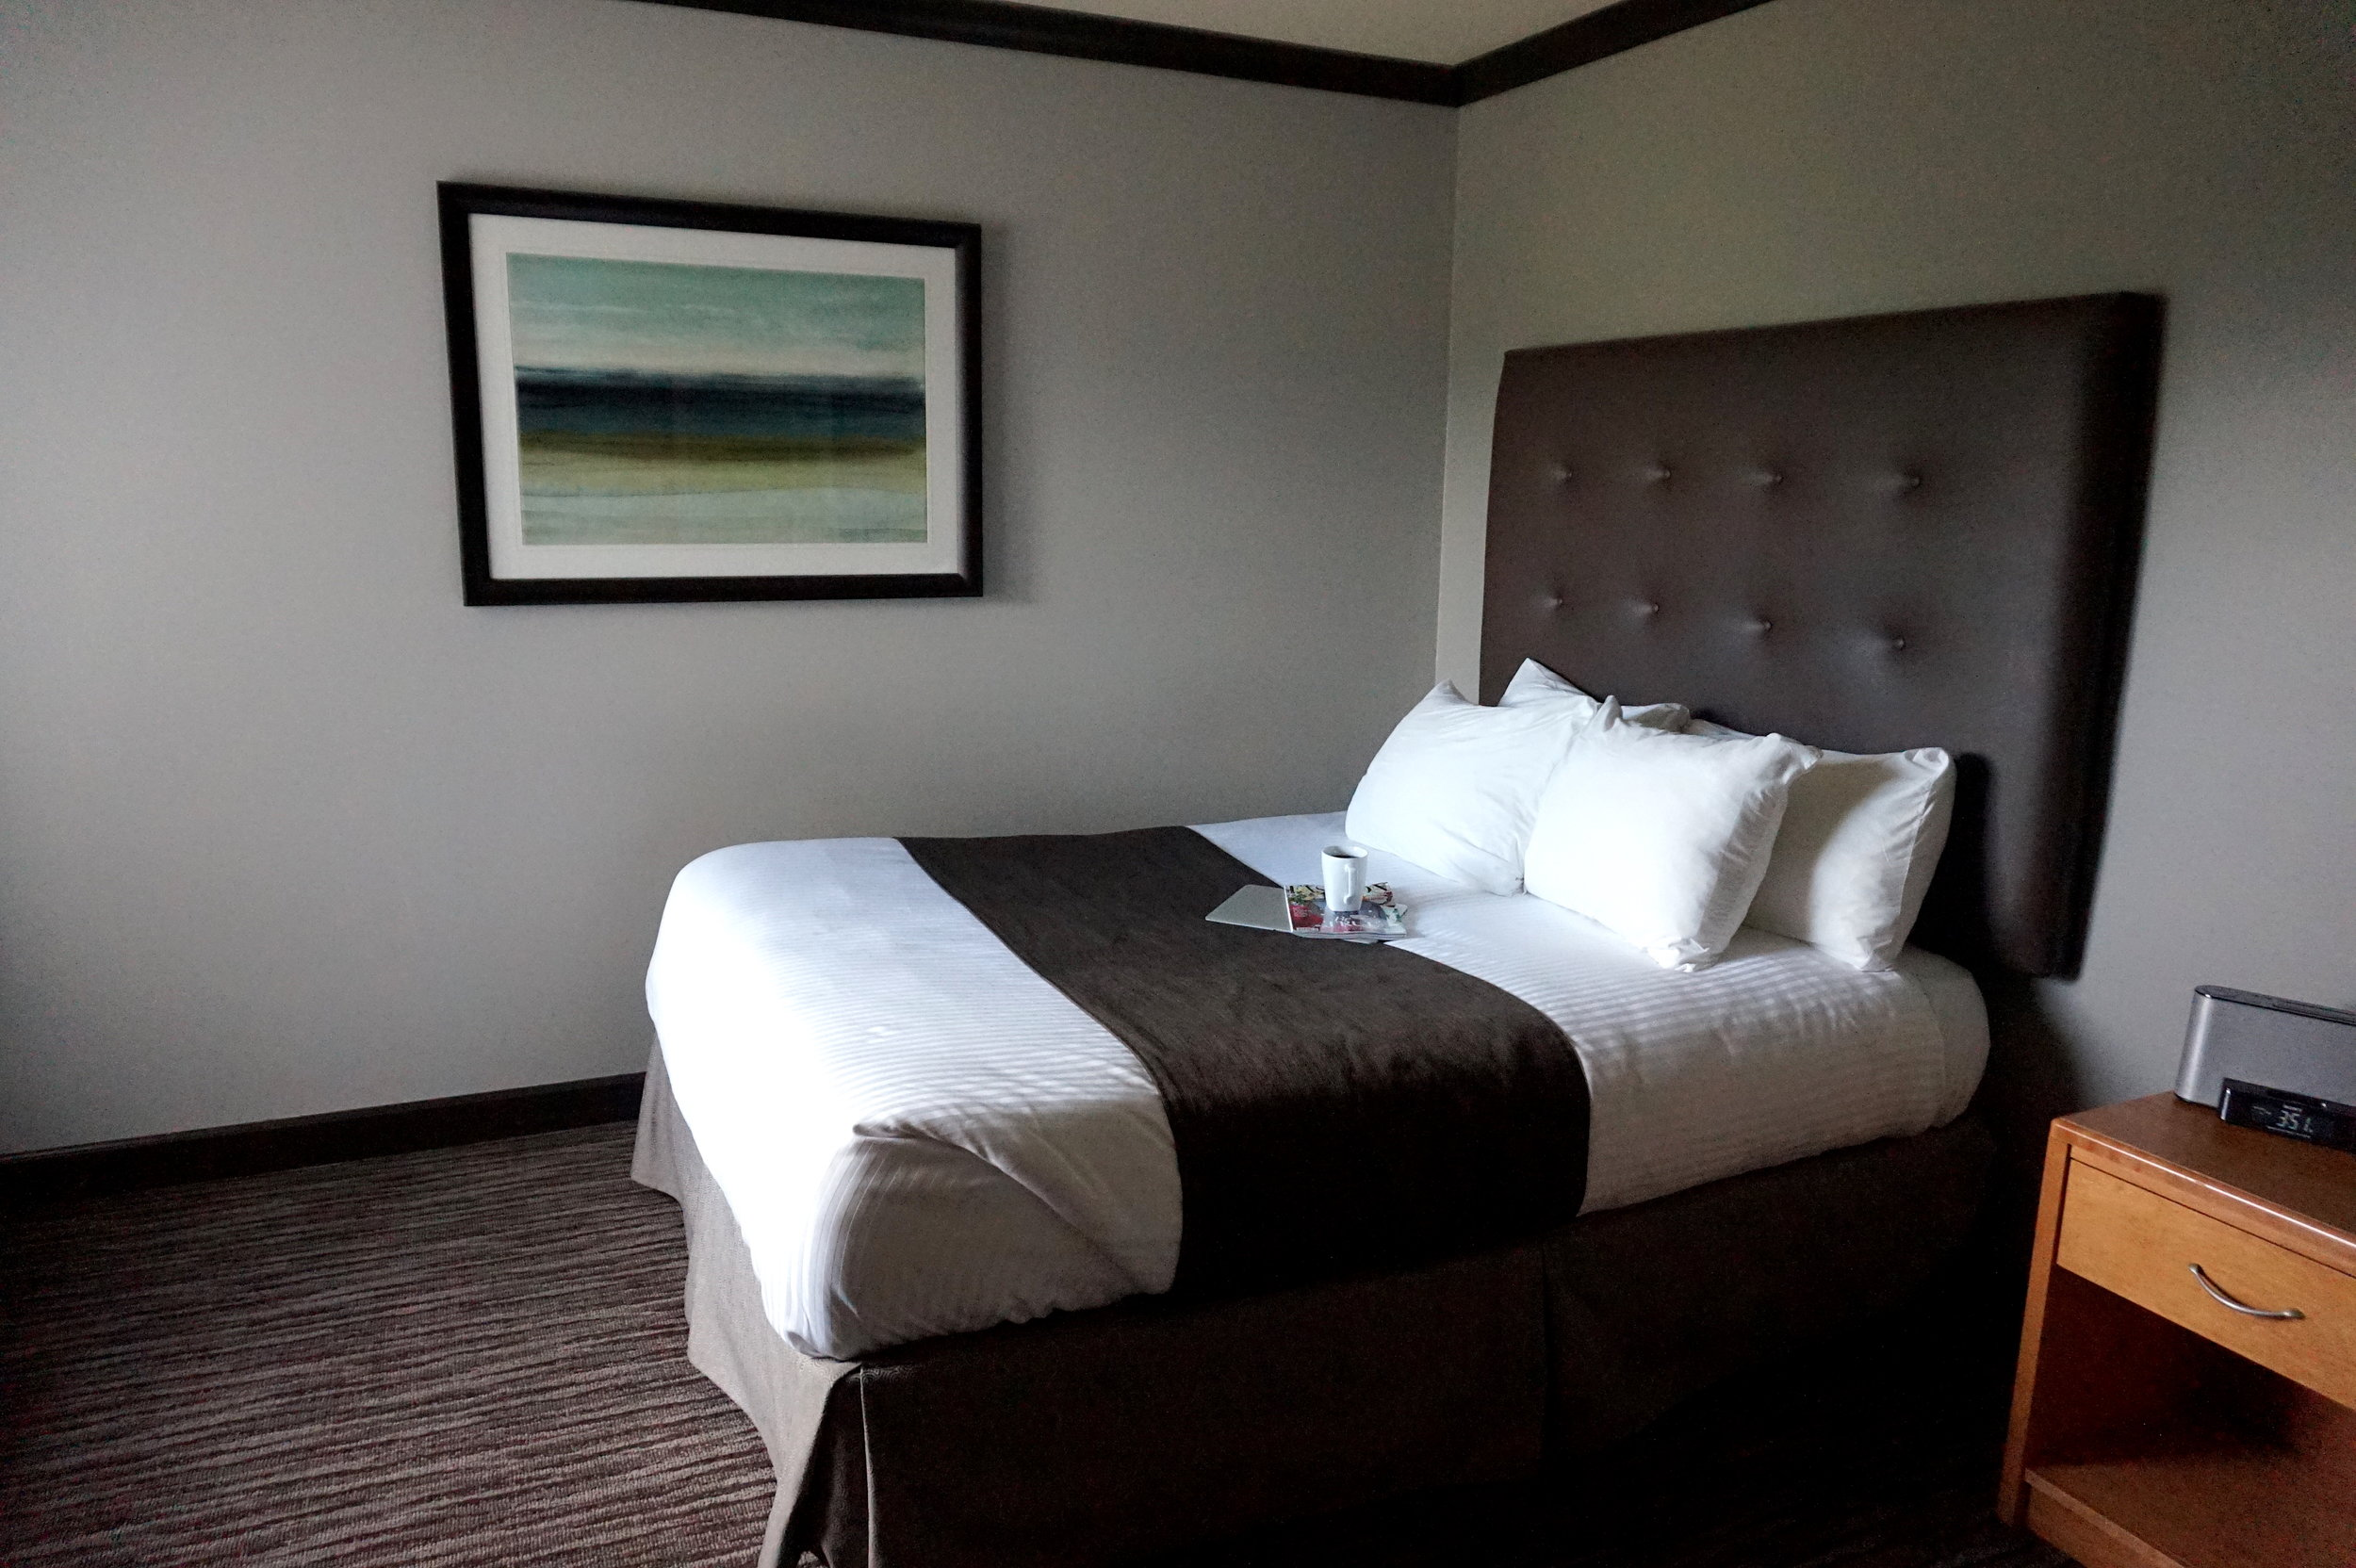 hotels prince george, where to stay in prince george bc